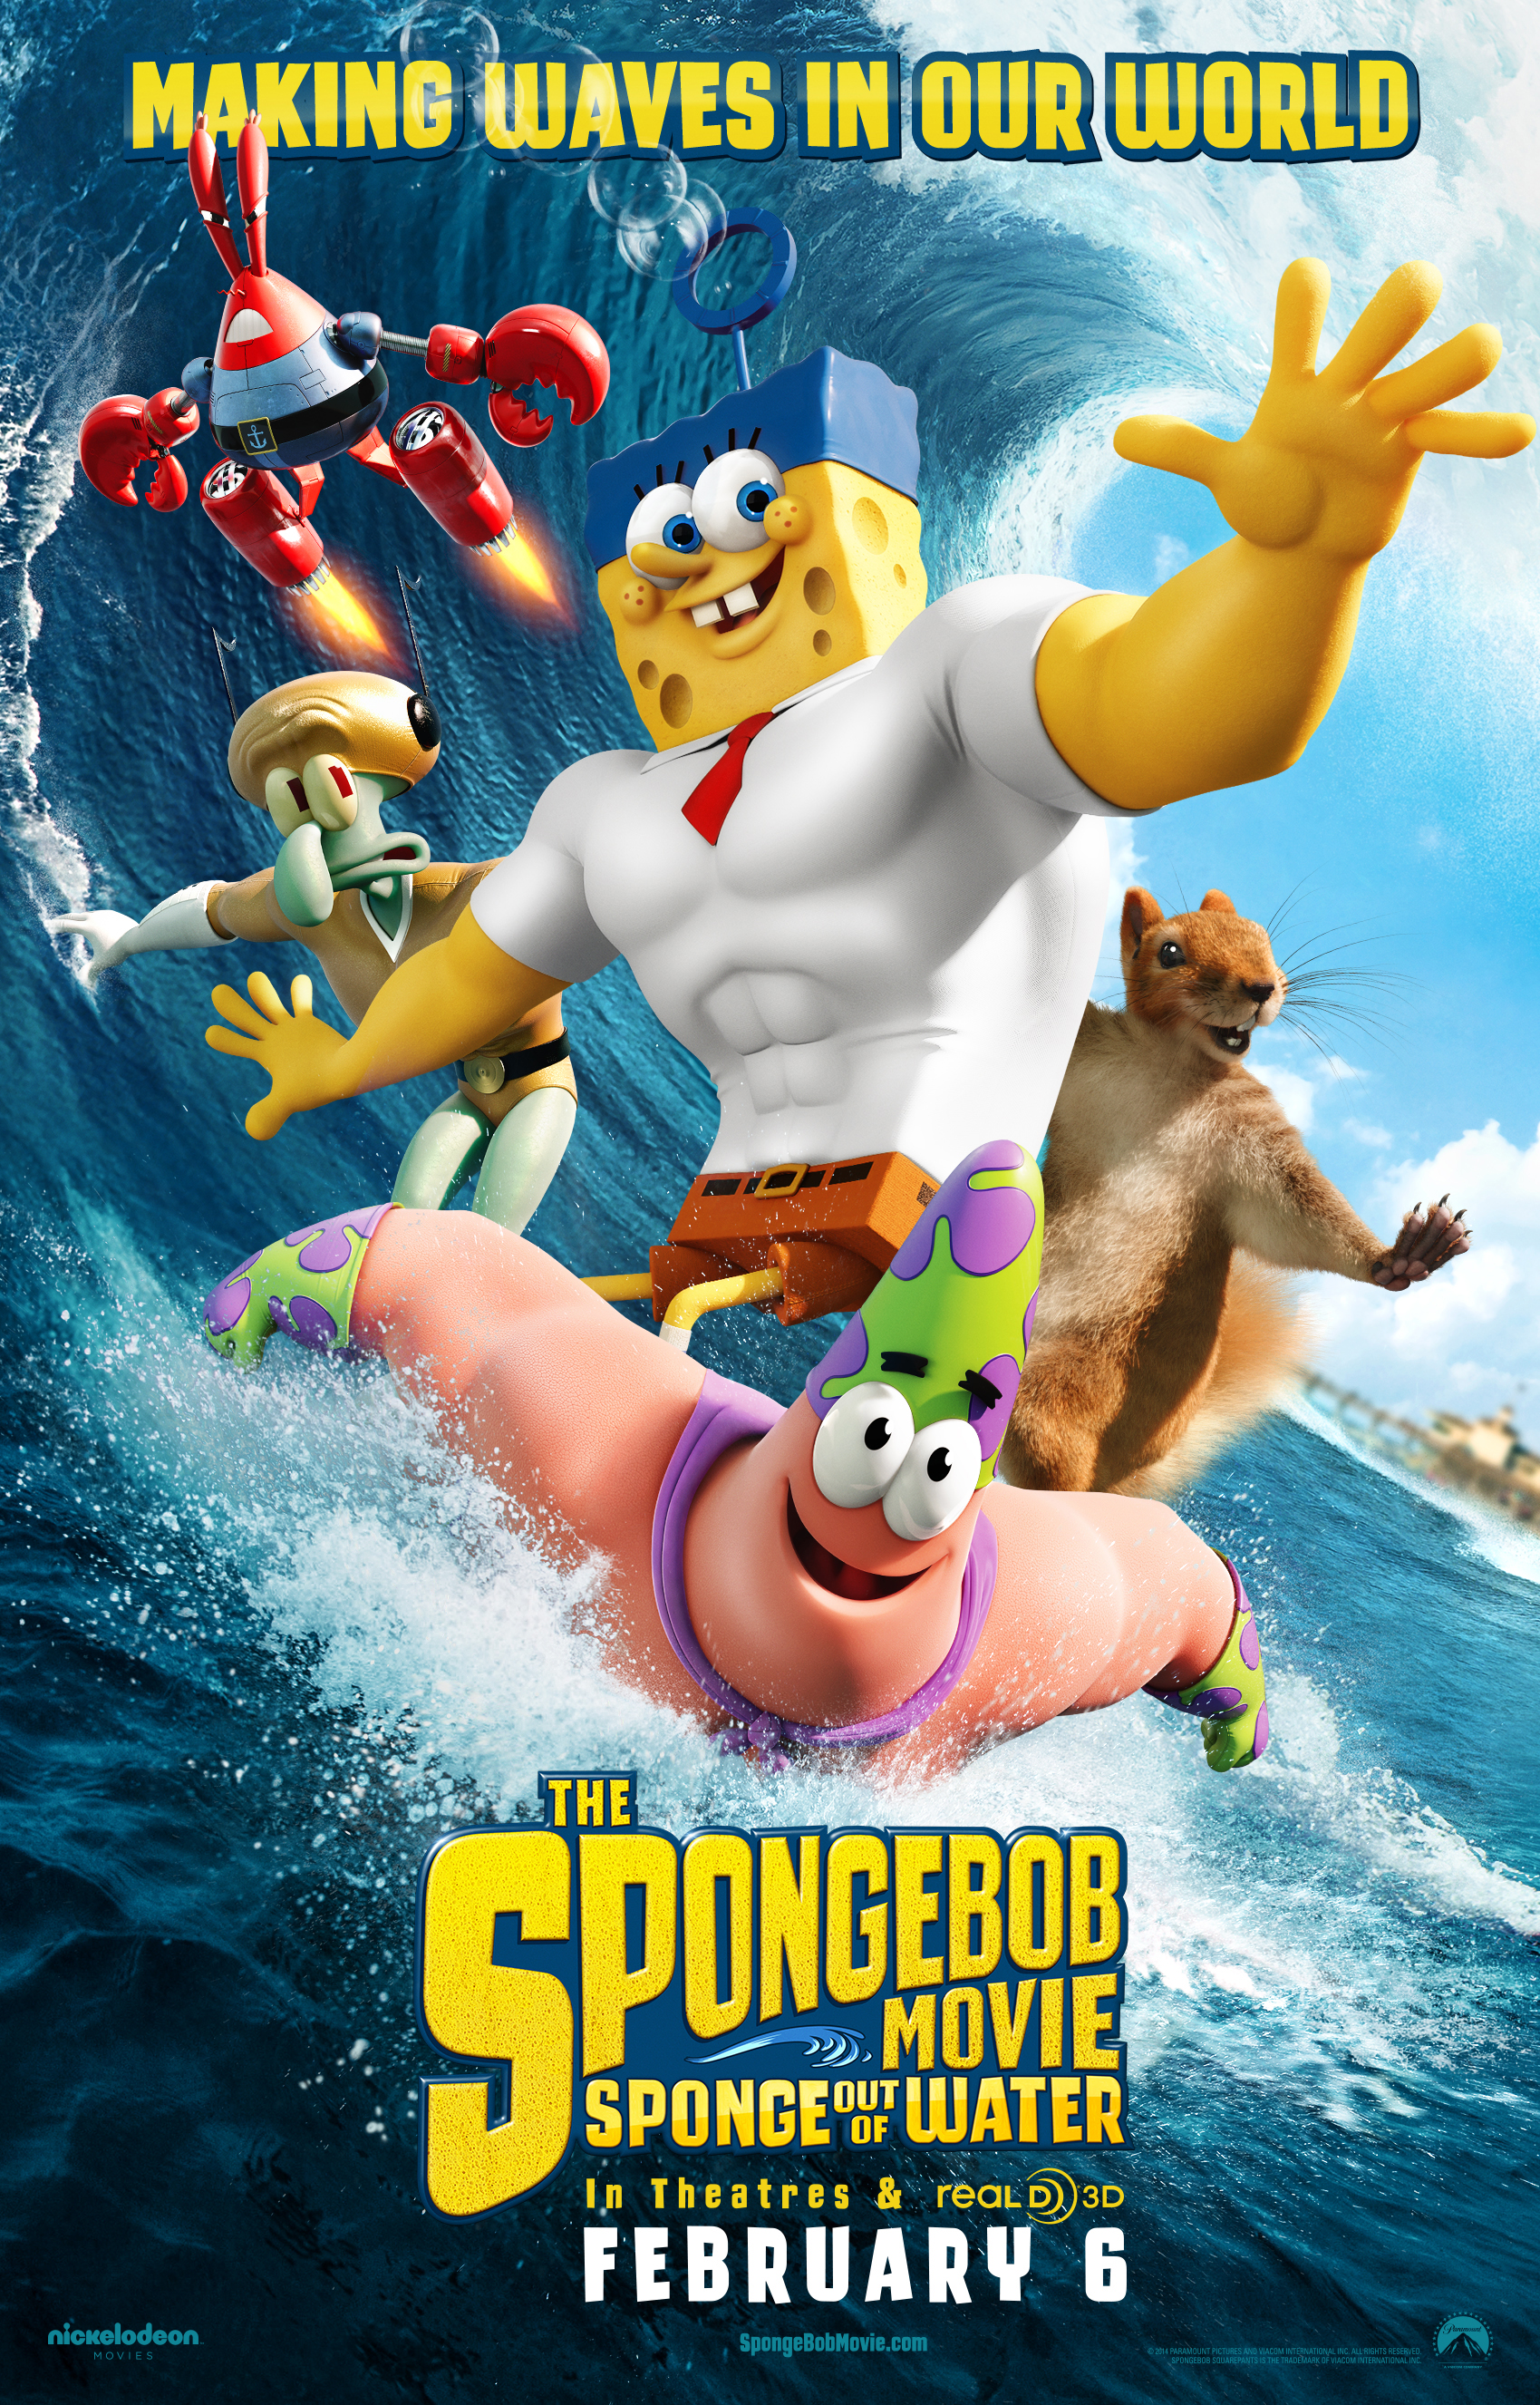 SpongeBob movie poster